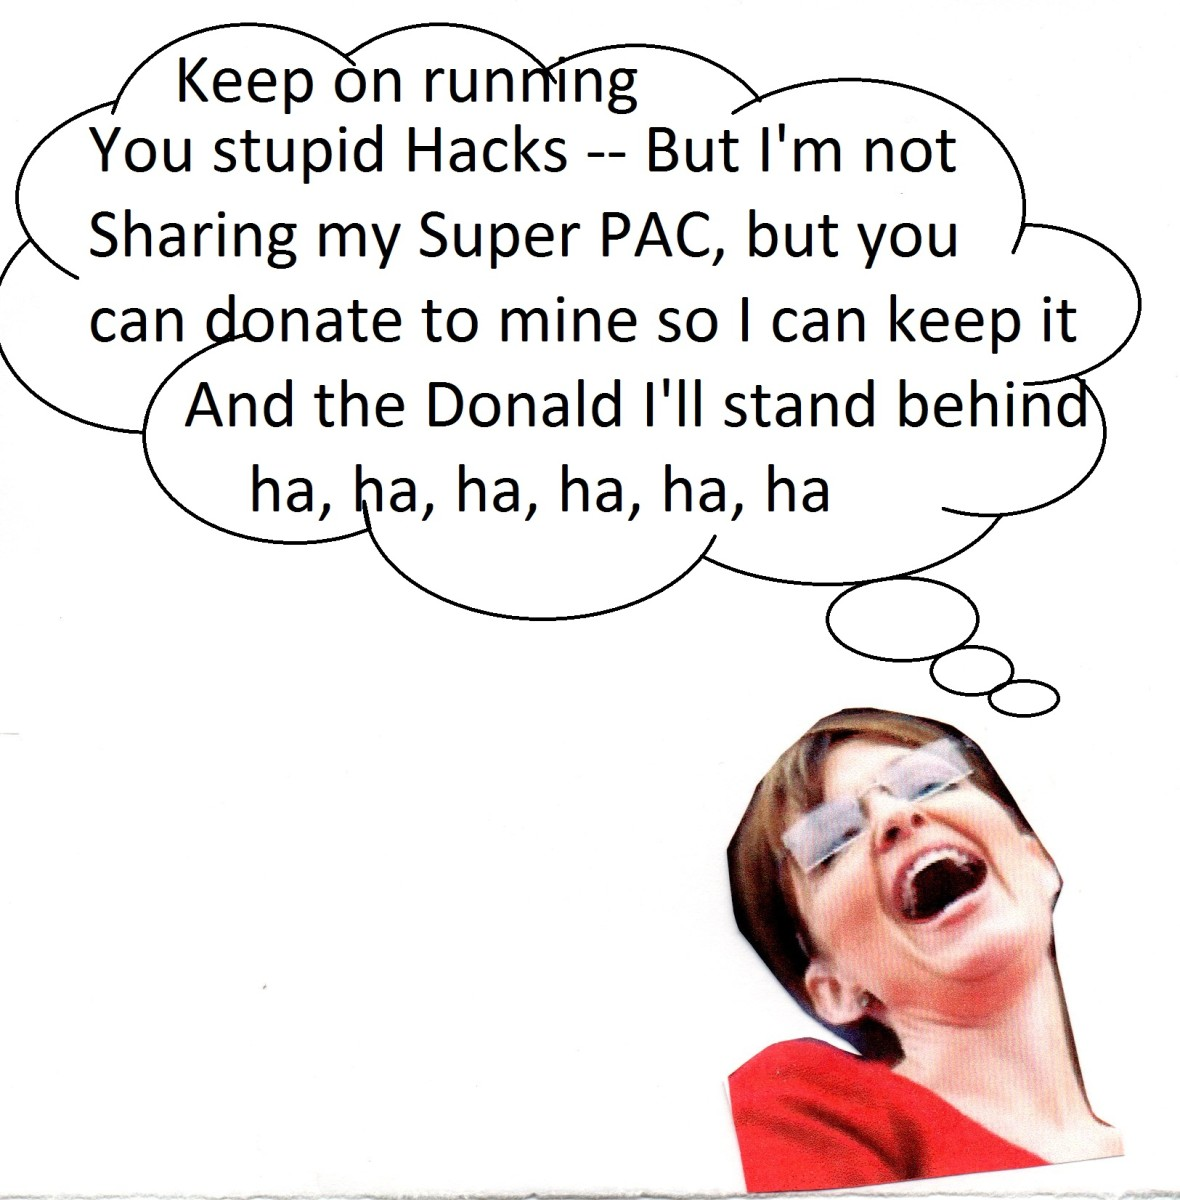 You guys go ahead and run, you can all be a hack, I'll be quite comfortable NOT sharing my Super-PAC.